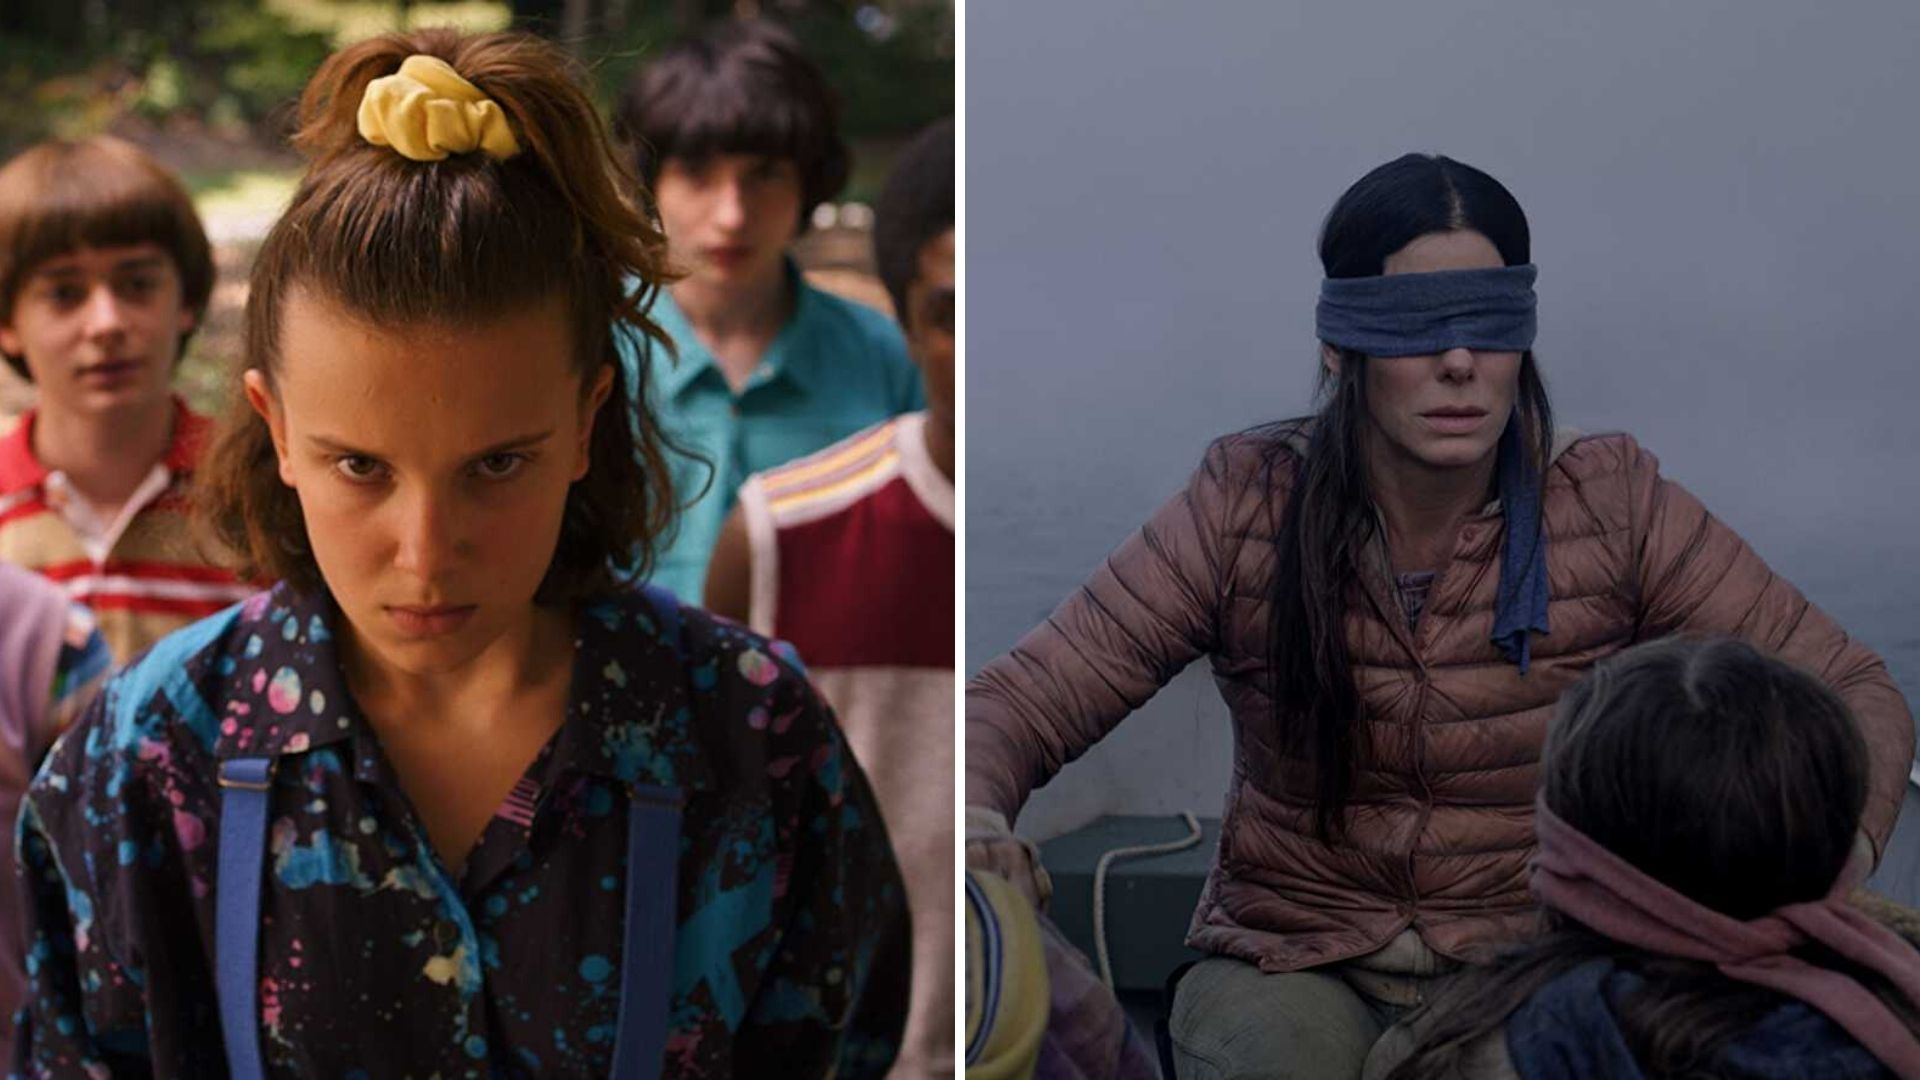 'Stranger Things' and 'Birdbox' Top Netflix's Most-Watched List